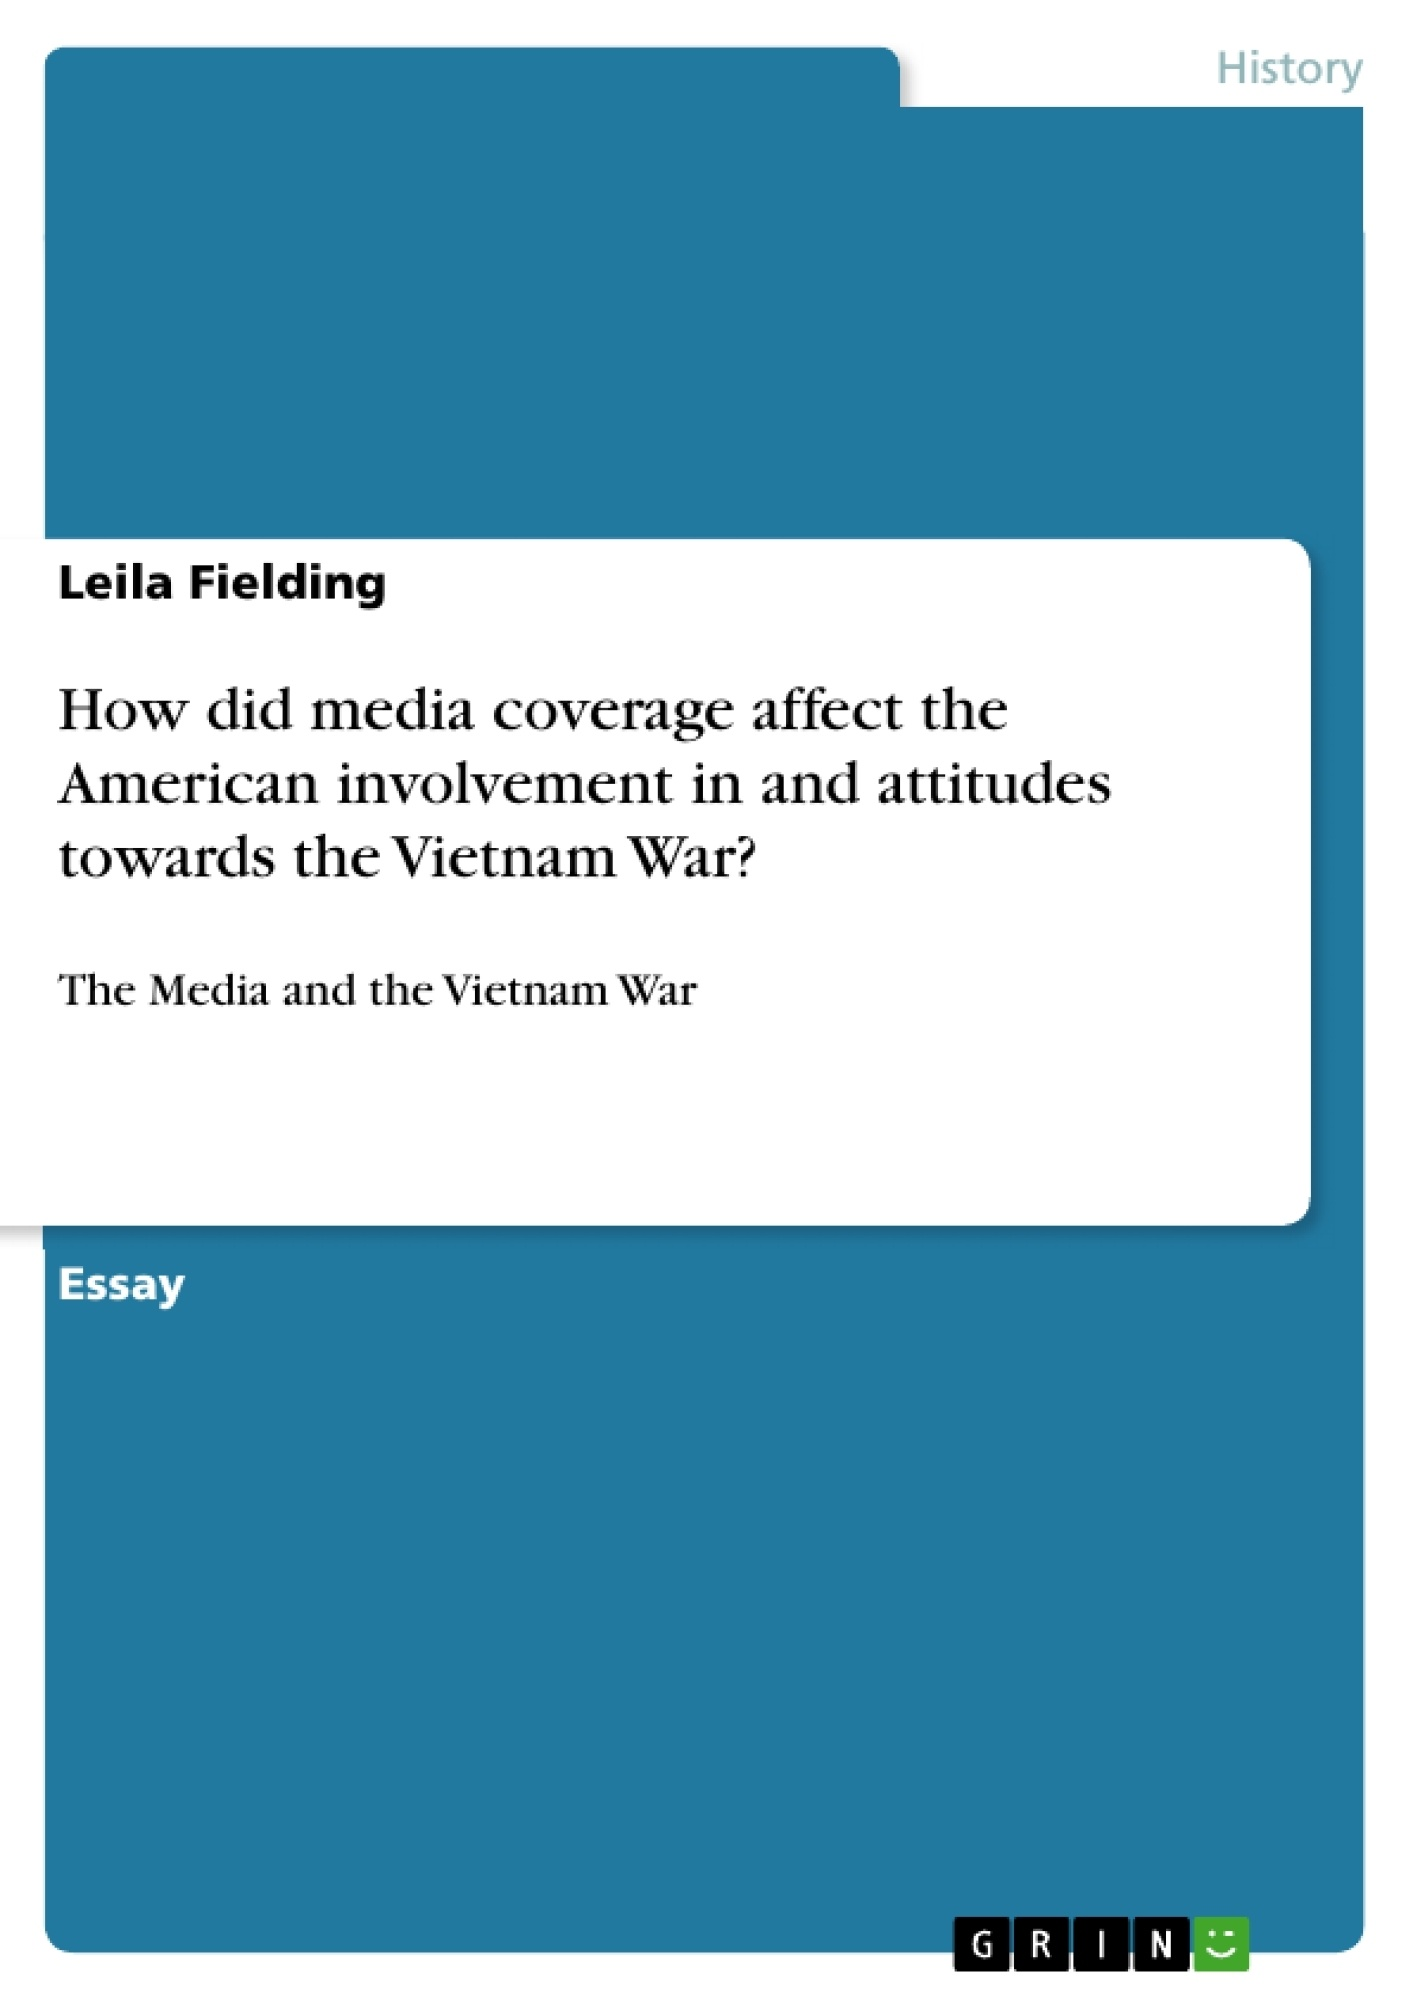 How did media coverage affect the American involvement in and ...